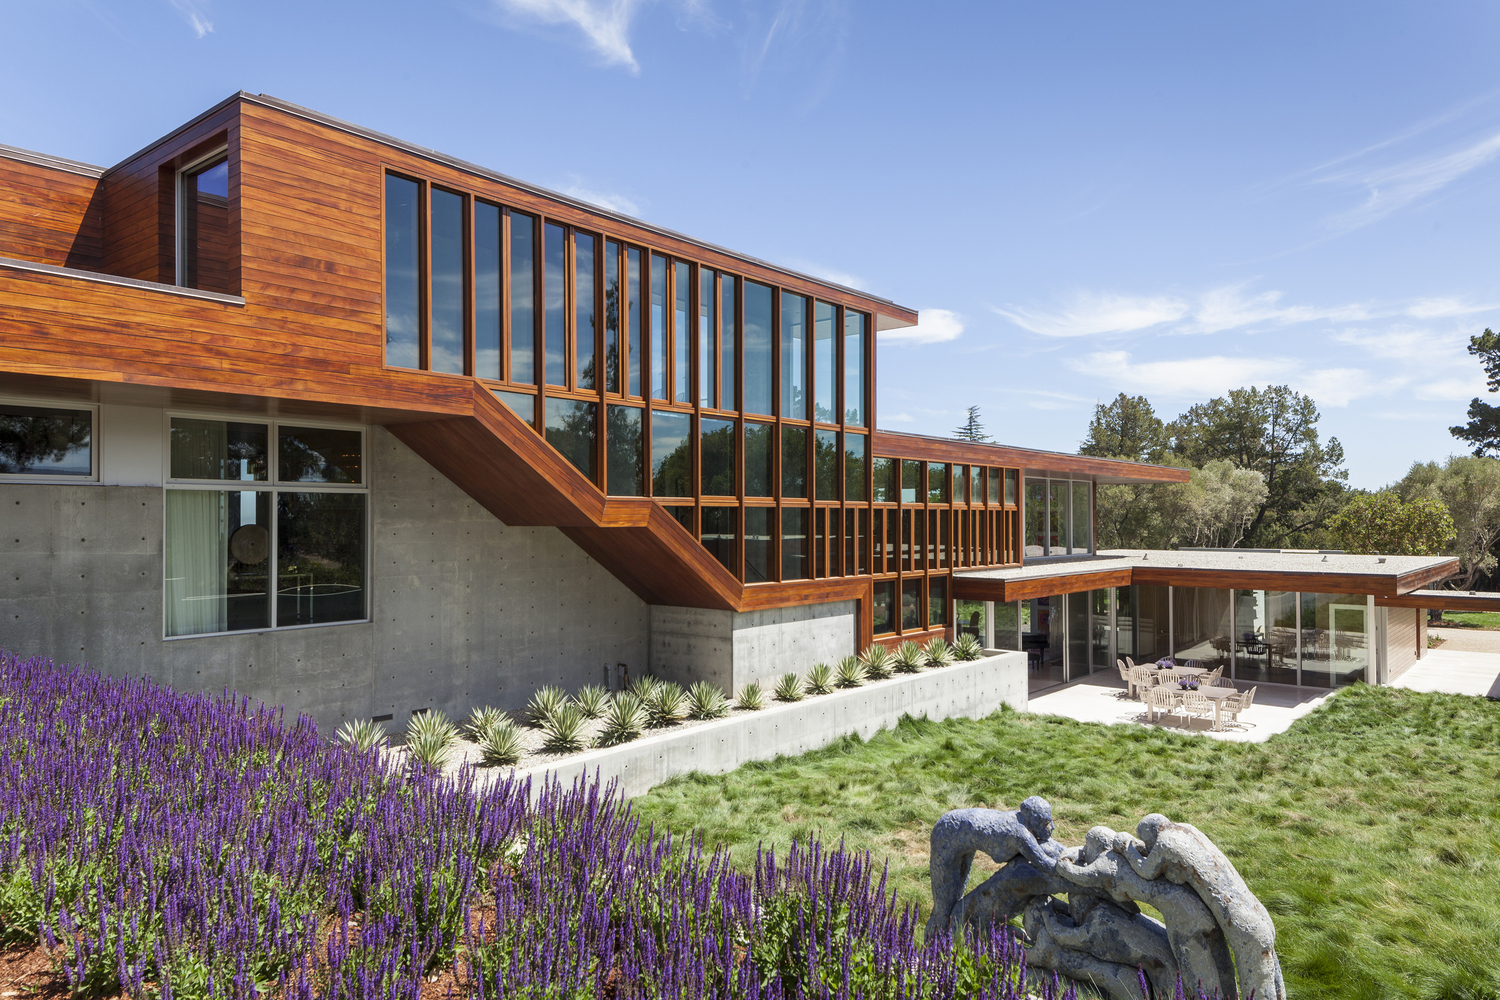 Vidalakis residence by swatt miers architects in portola - Residence calistoga strening architects californie ...